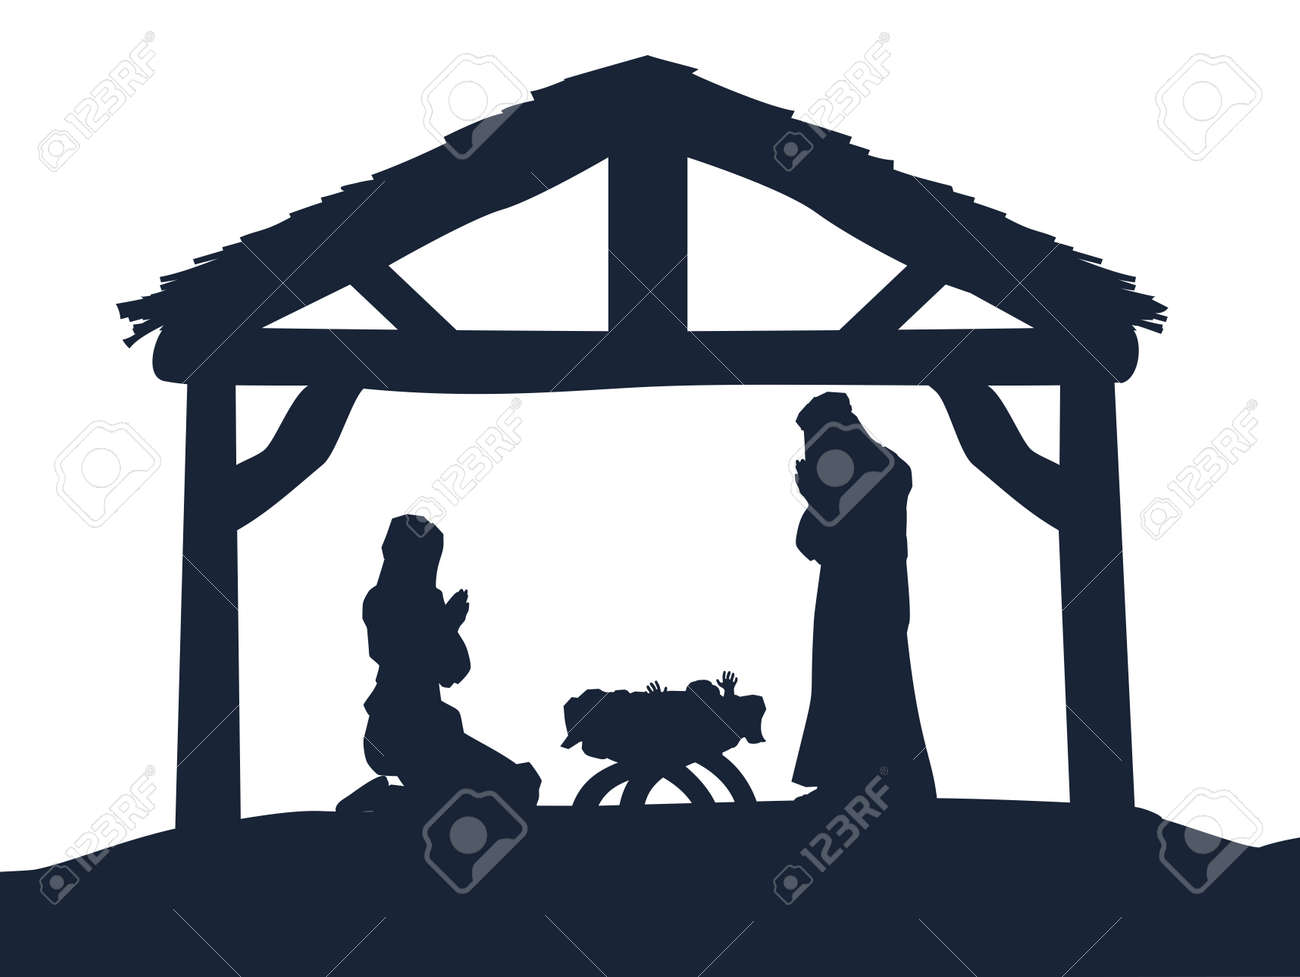 hight resolution of traditional christian christmas nativity scene of baby jesus in the manger with mary and joseph in